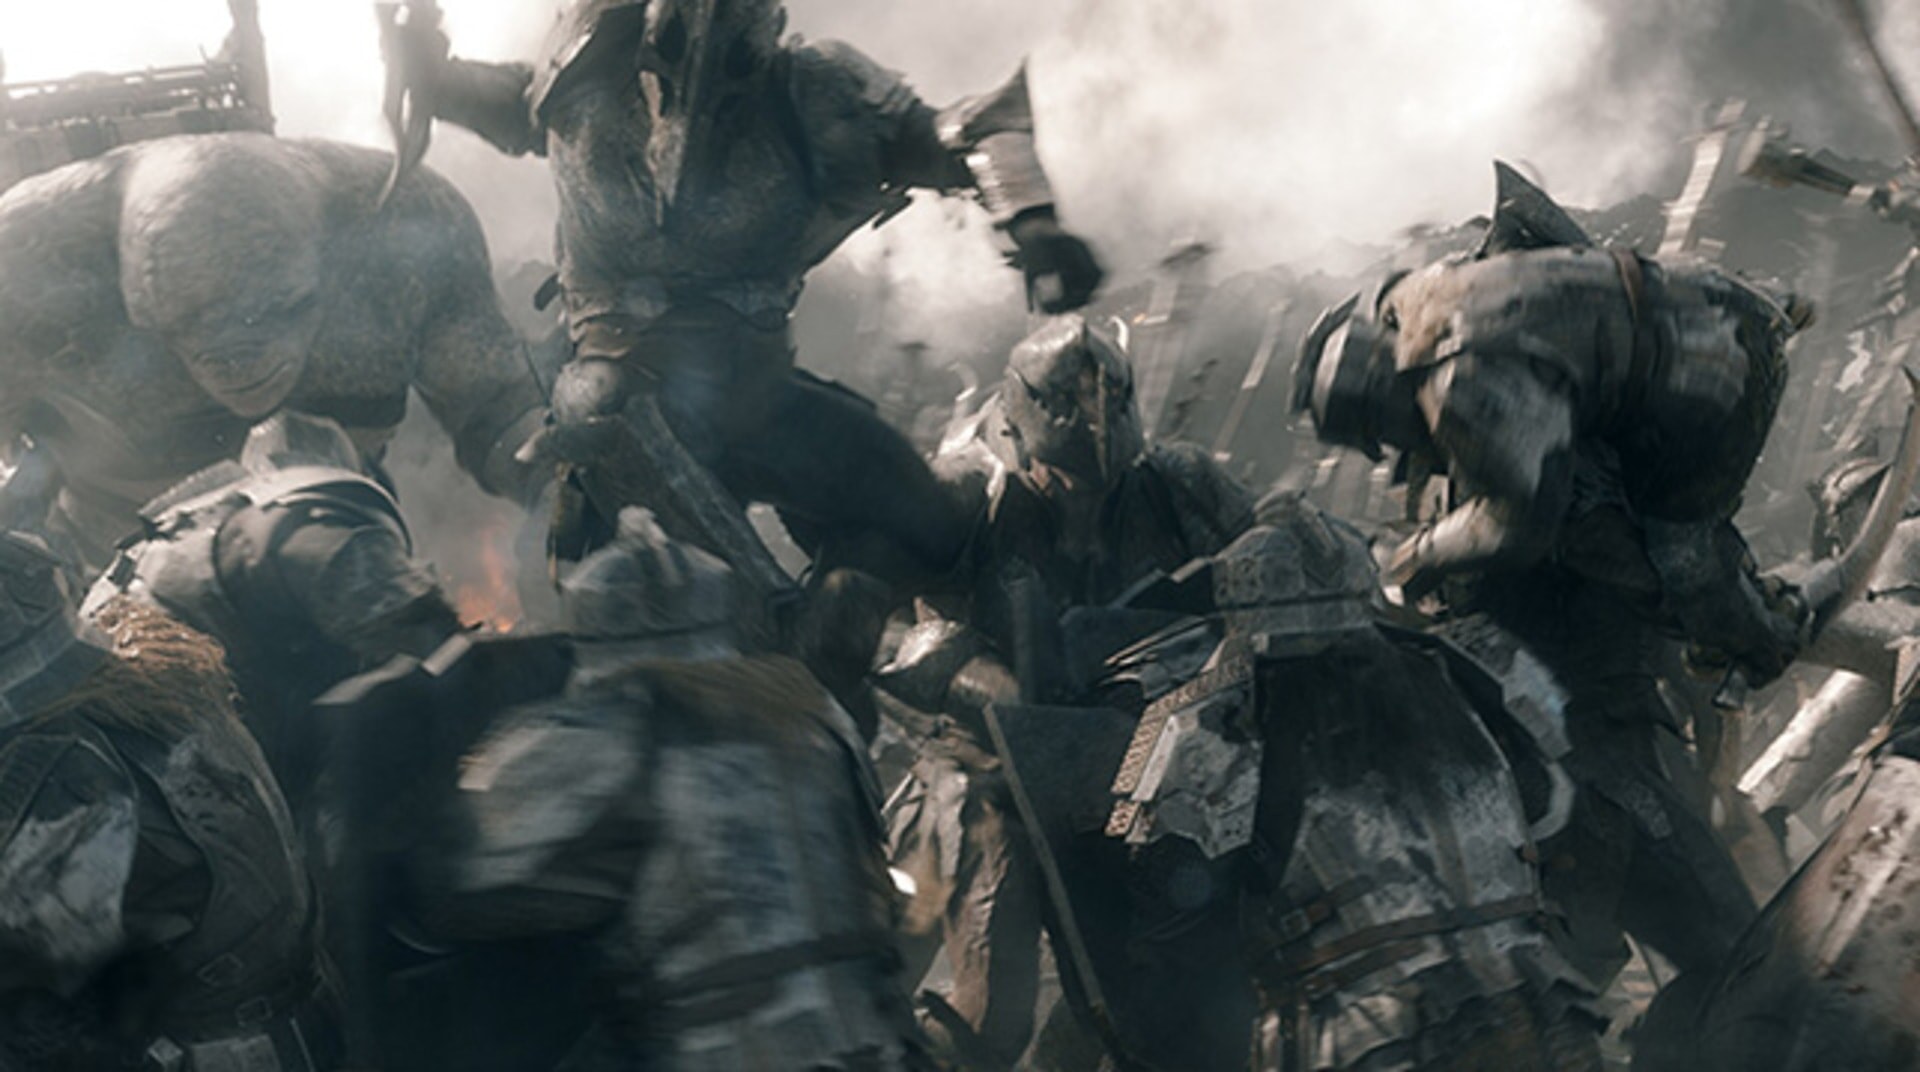 The Hobbit: The Battle of the Five Armies - Image 27